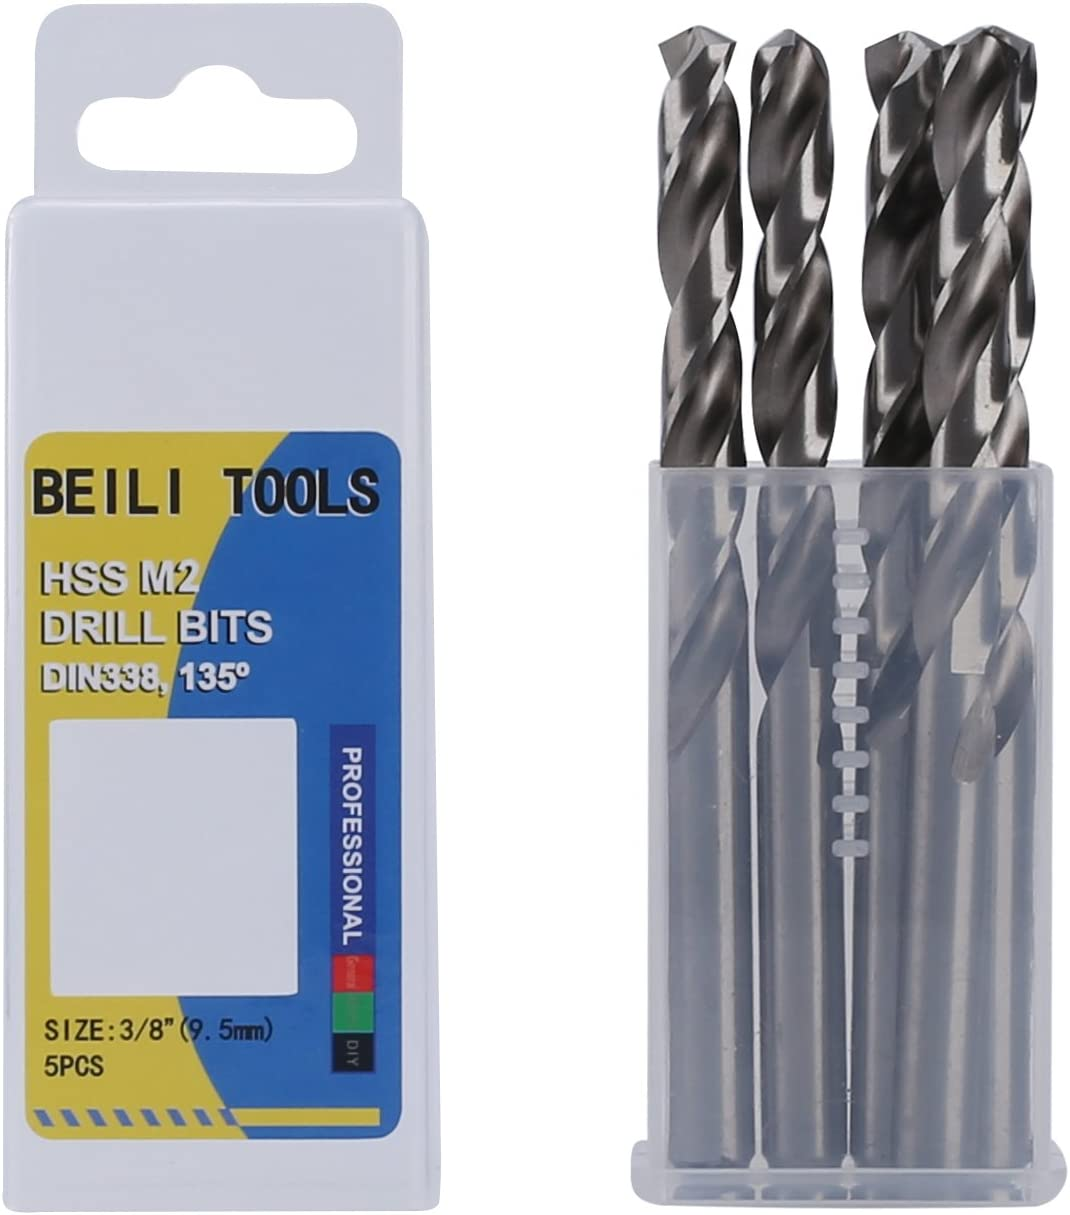 HSSG PRECISE M2 ALLOYED HSS JOBBER DRILL BITS FULLY GROUND-SOLID MATERIAL 5-13MM